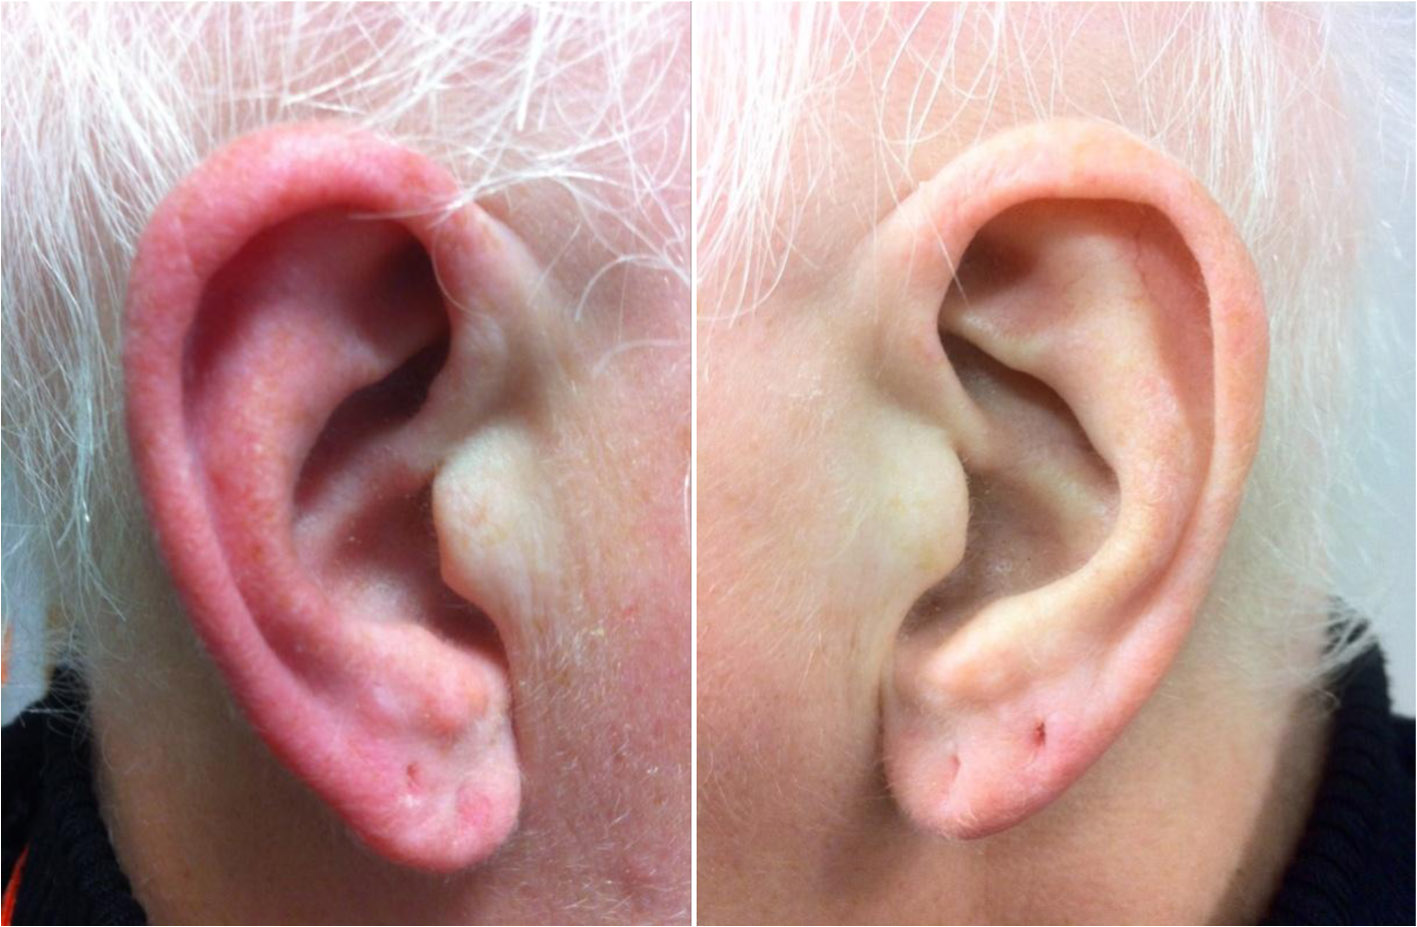 Red ear syndrome - Wikipedia